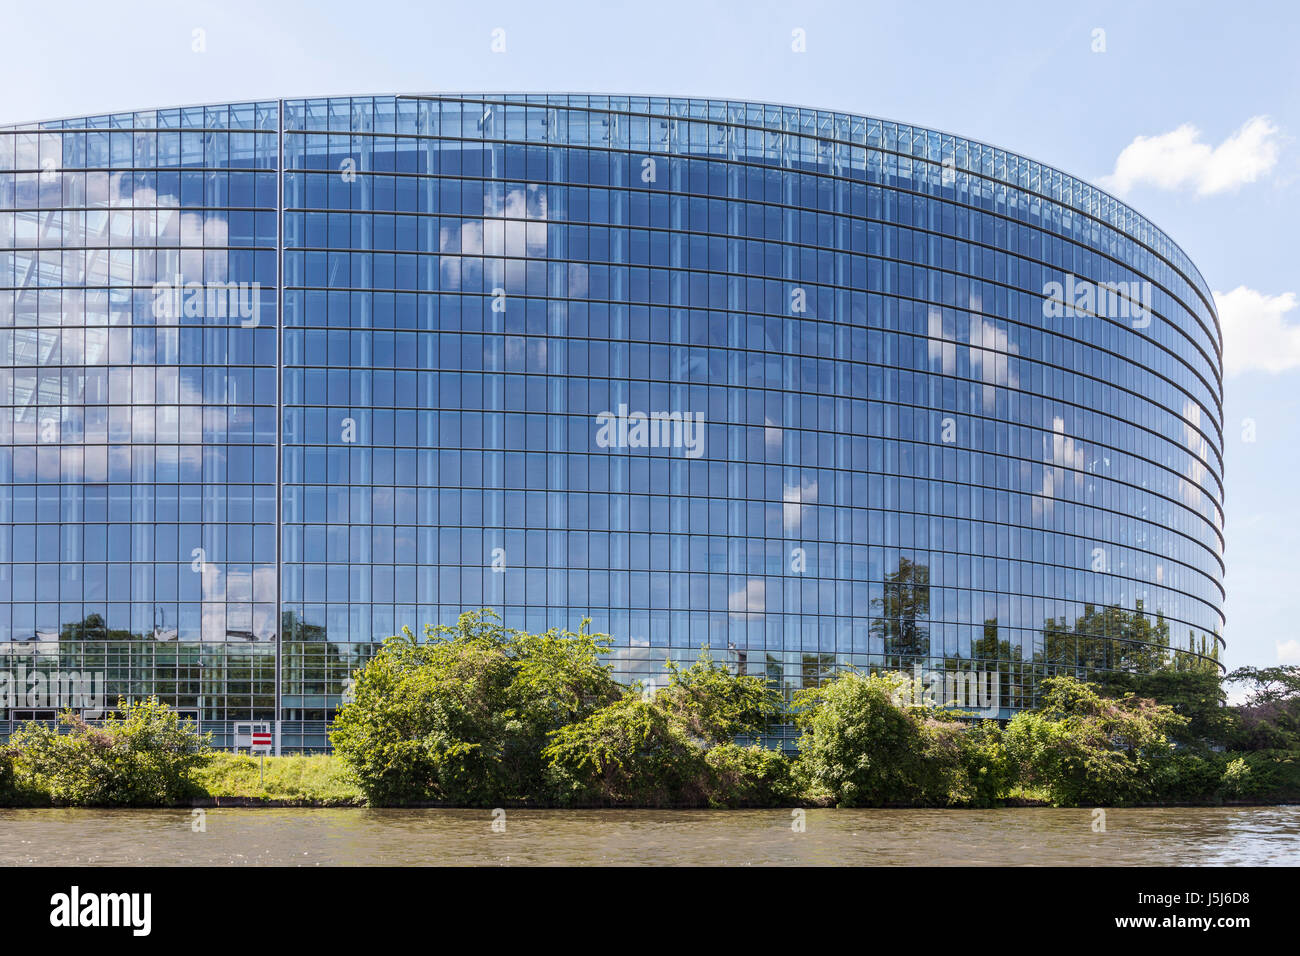 The Louise Weiss Building - European Parliament - Strasbourg, Alsace, France. - Stock Image